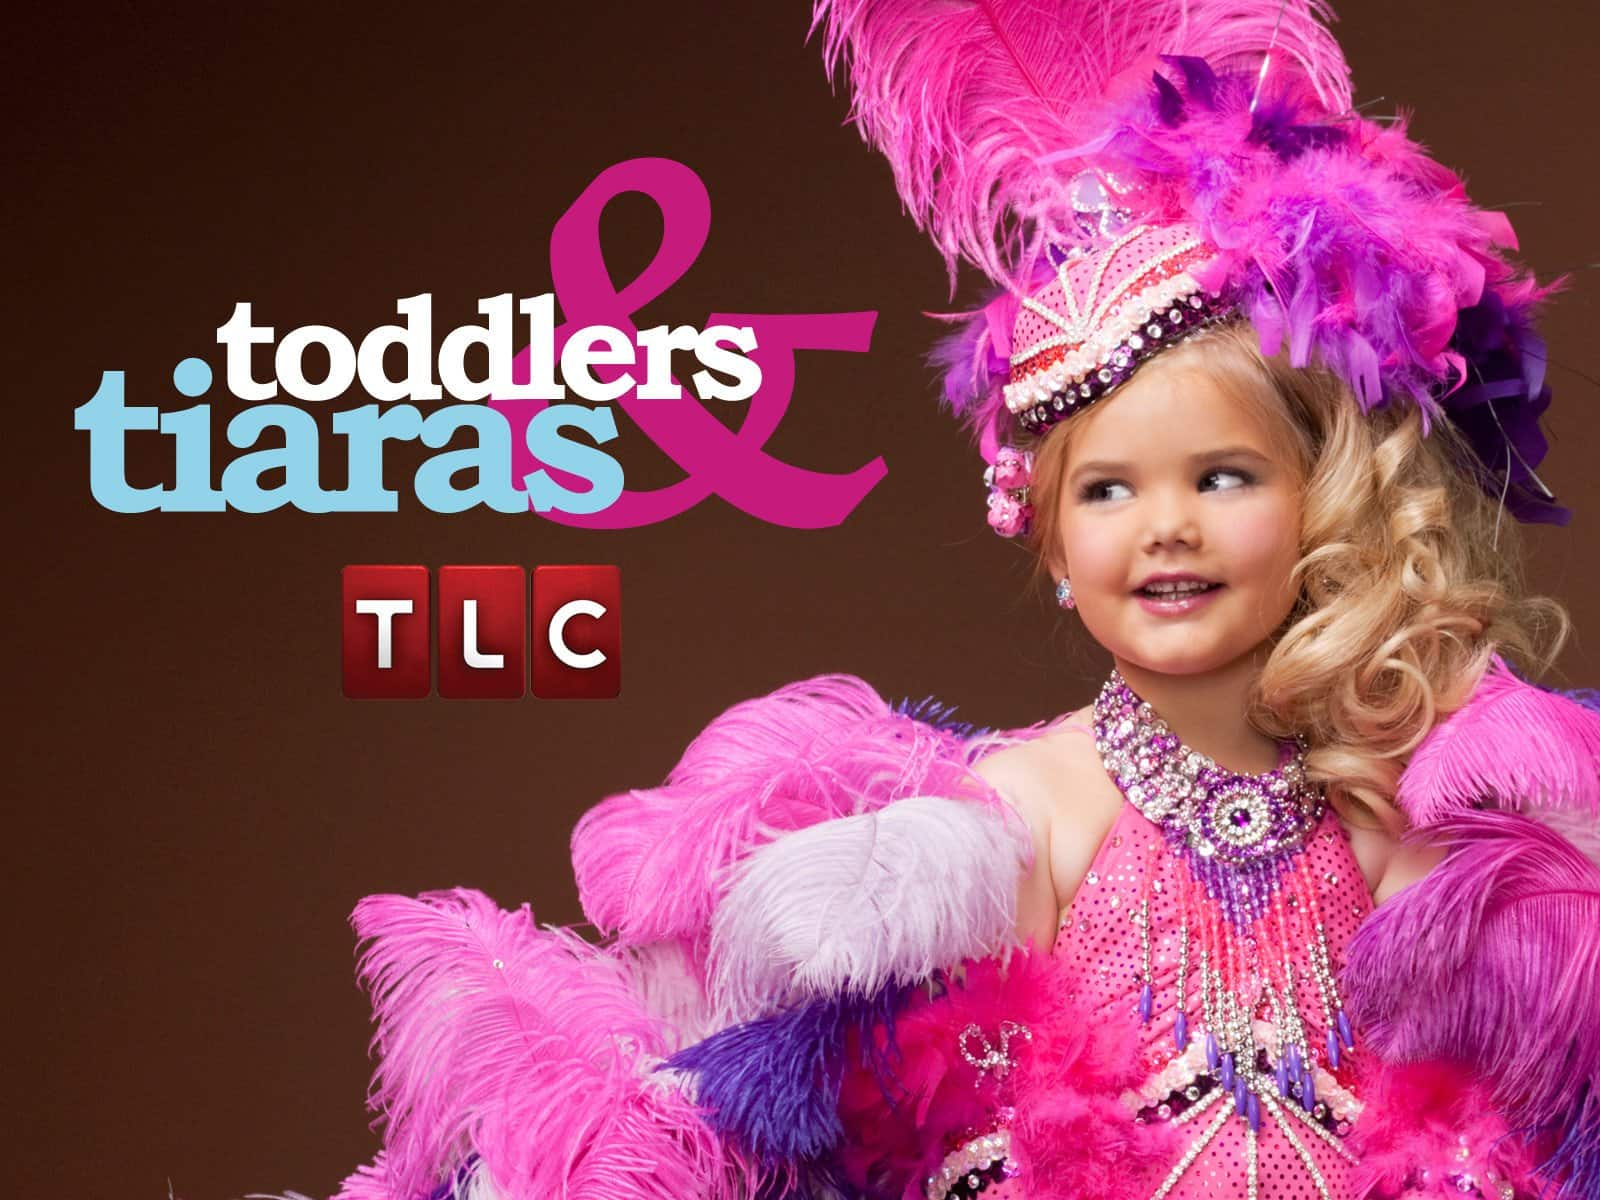 Child Actors - Child Stars - Toddlers and Tiaras - Child Talent Agents - Studiobinder